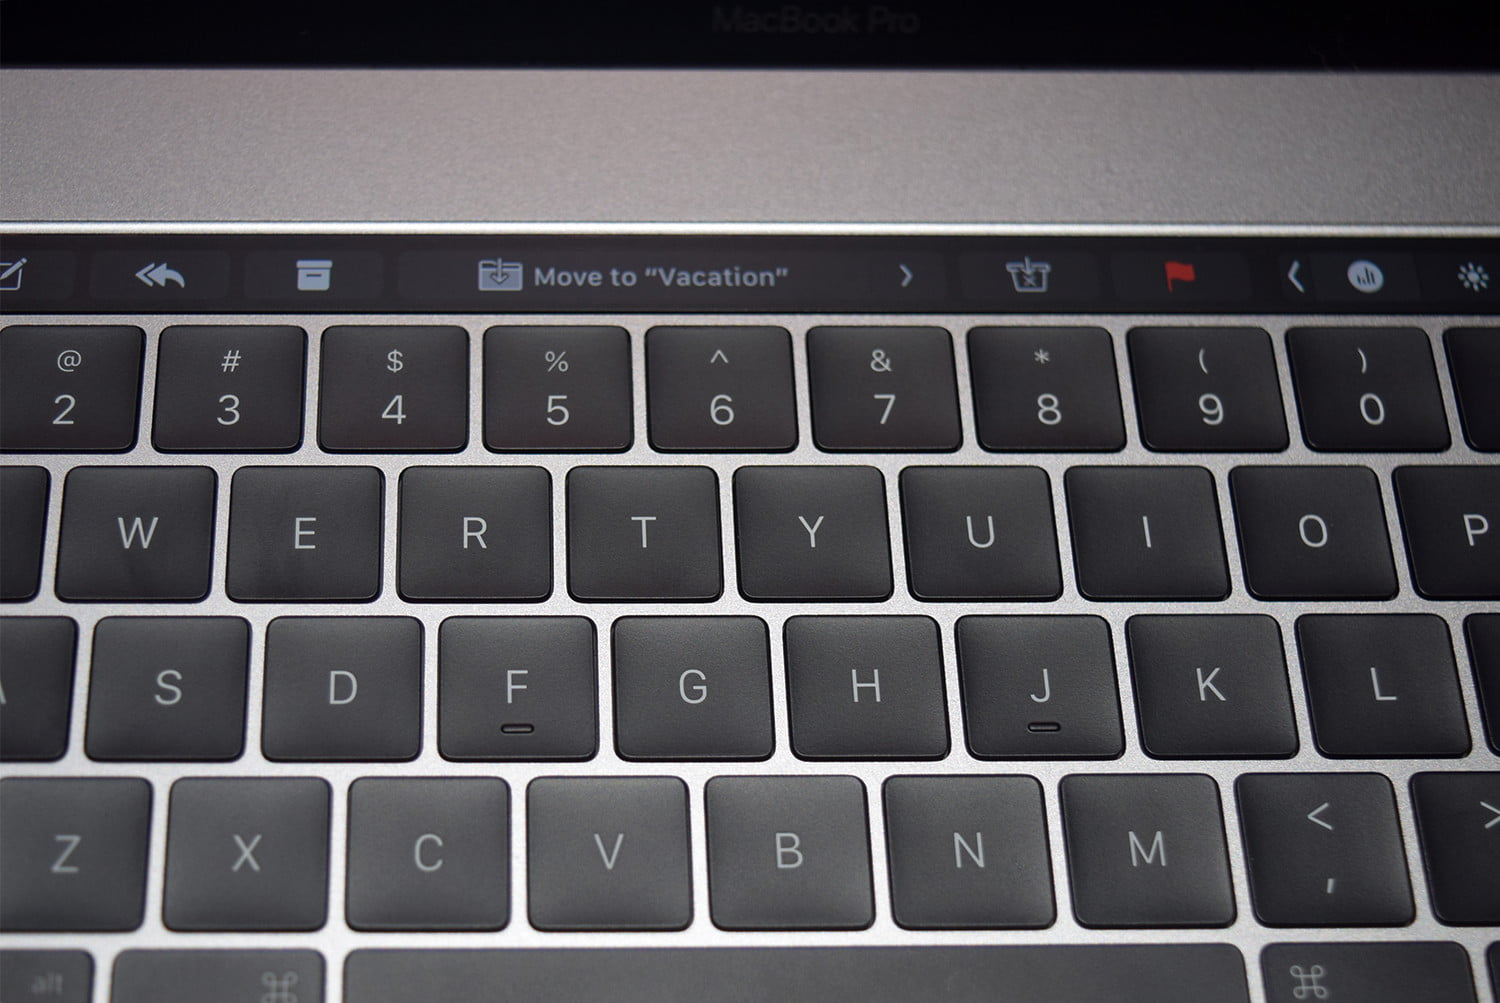 3cd495370c4 Apple's 2018 MacBook Pro Keyboard Comes With a Fix for Sticky Key Issues |  Digital Trends